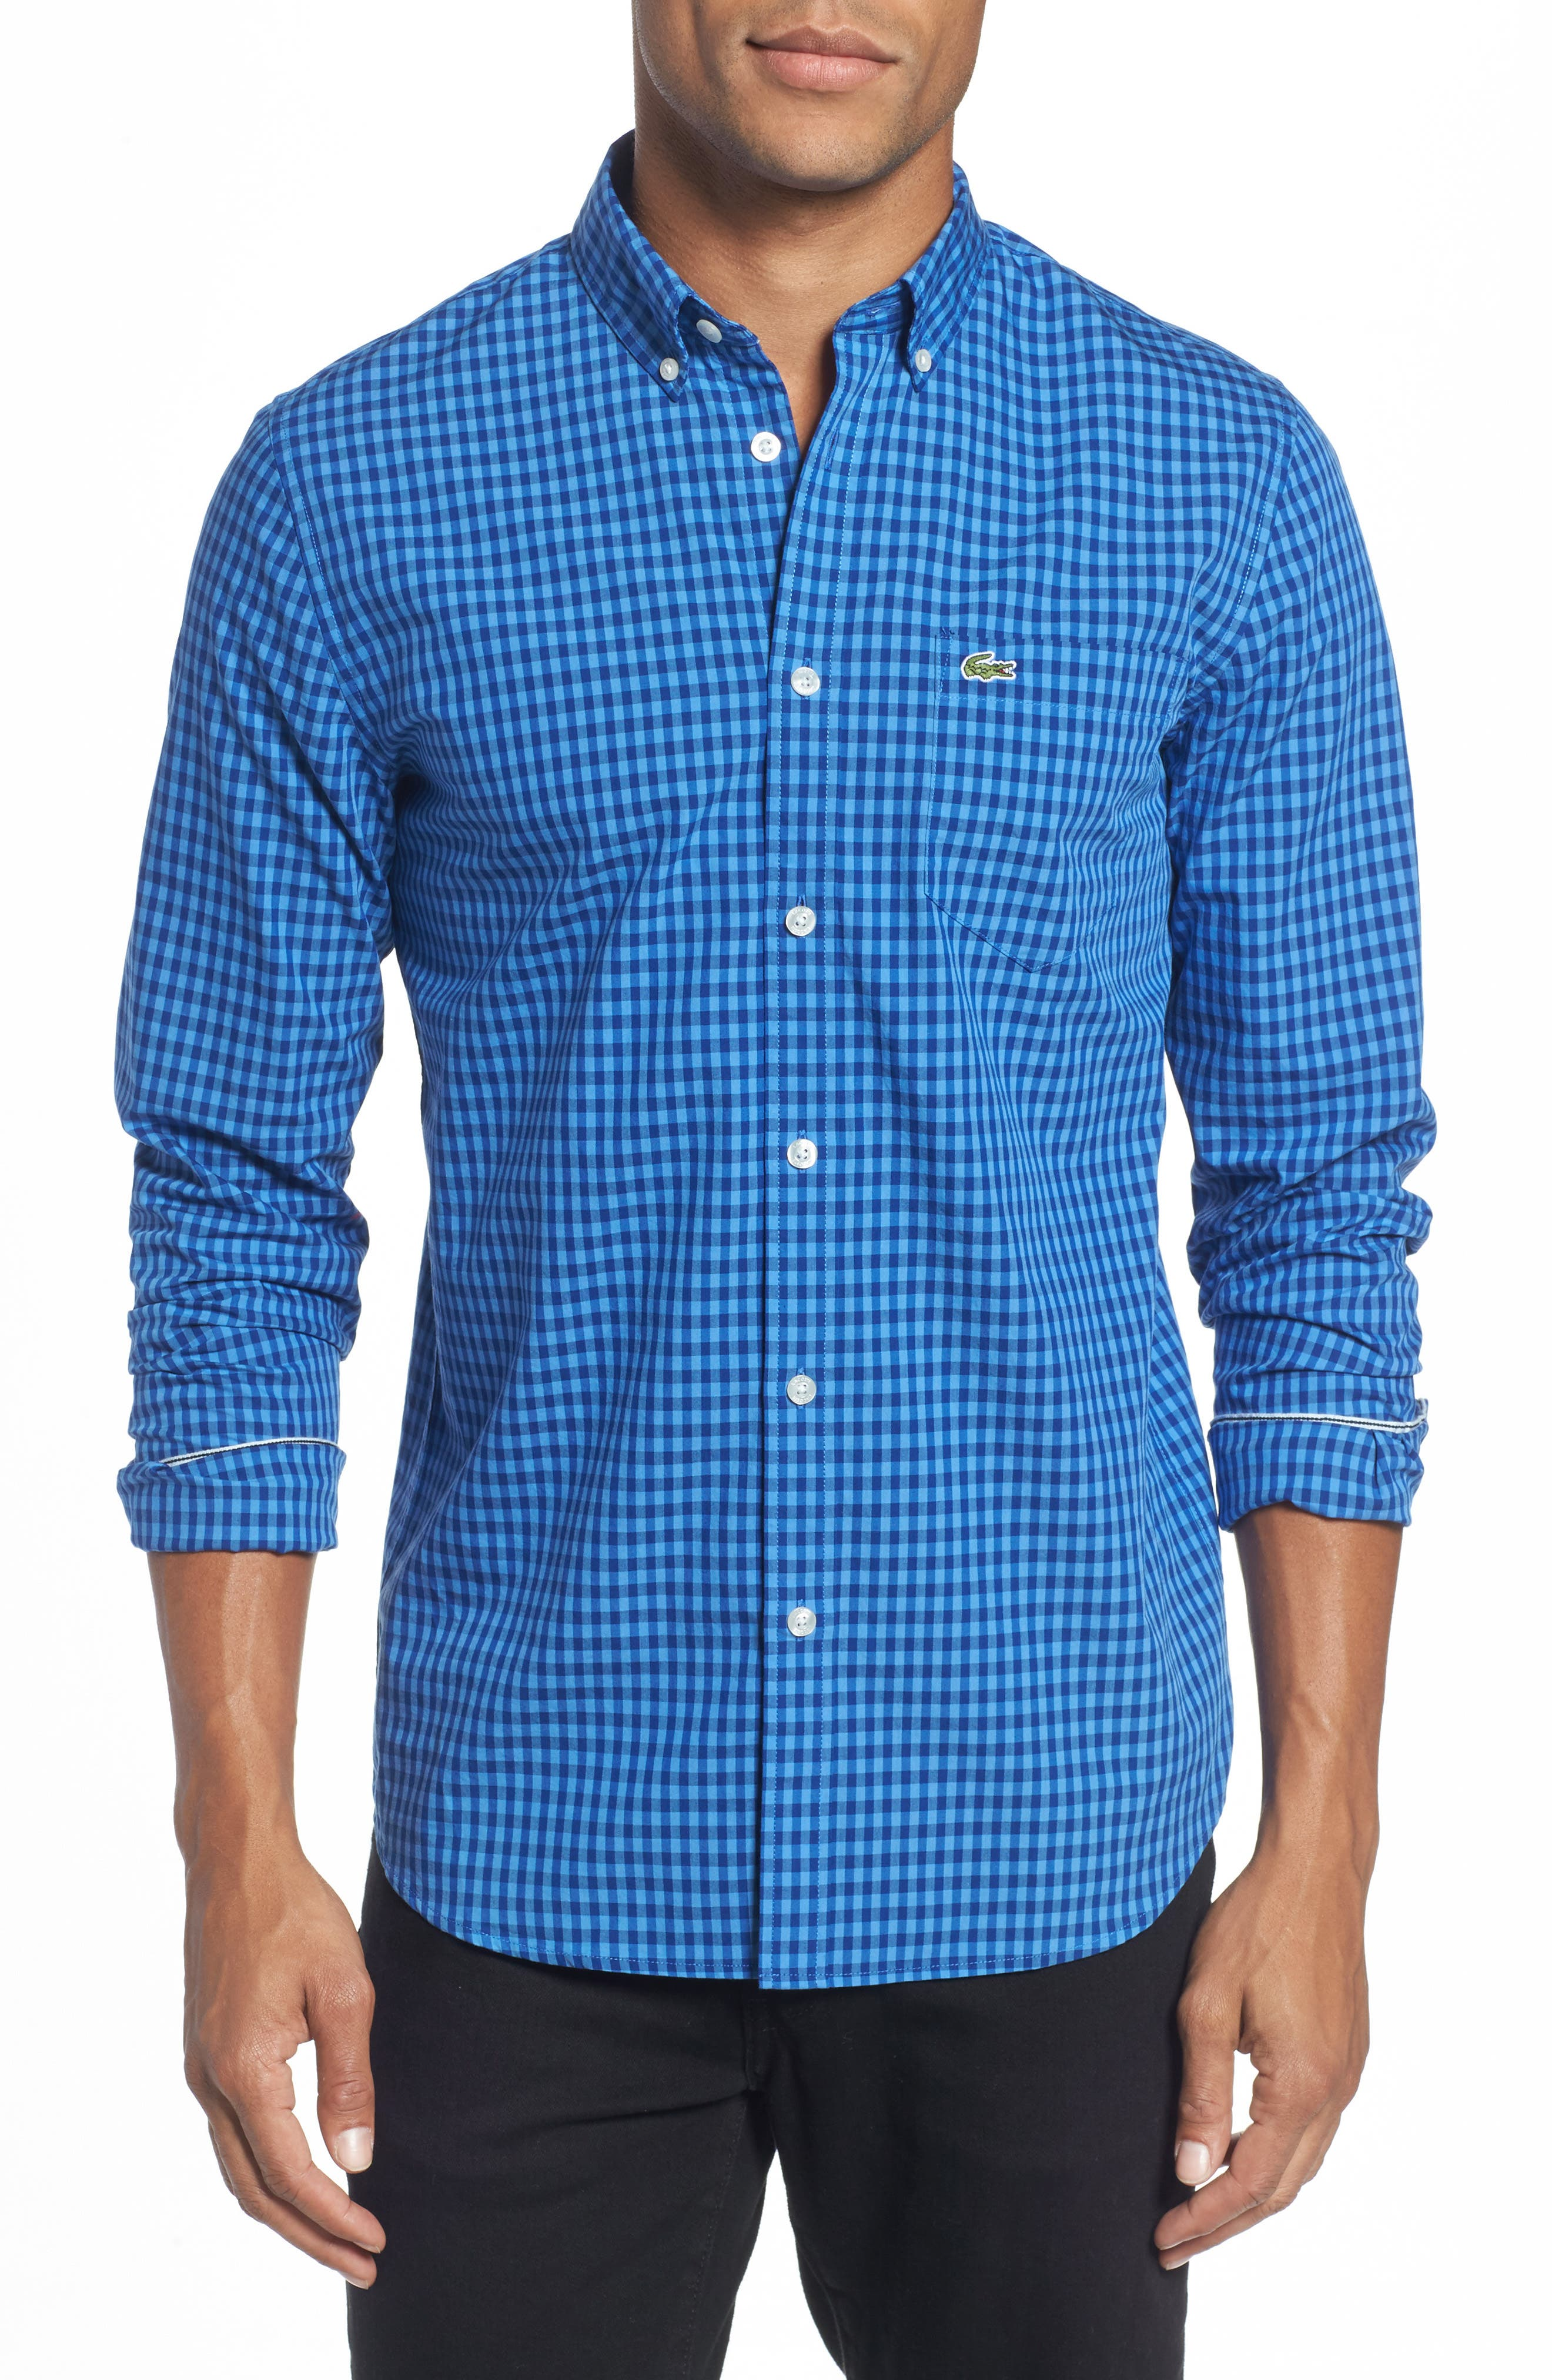 Gingham Check Poplin Shirt,                         Main,                         color, 493